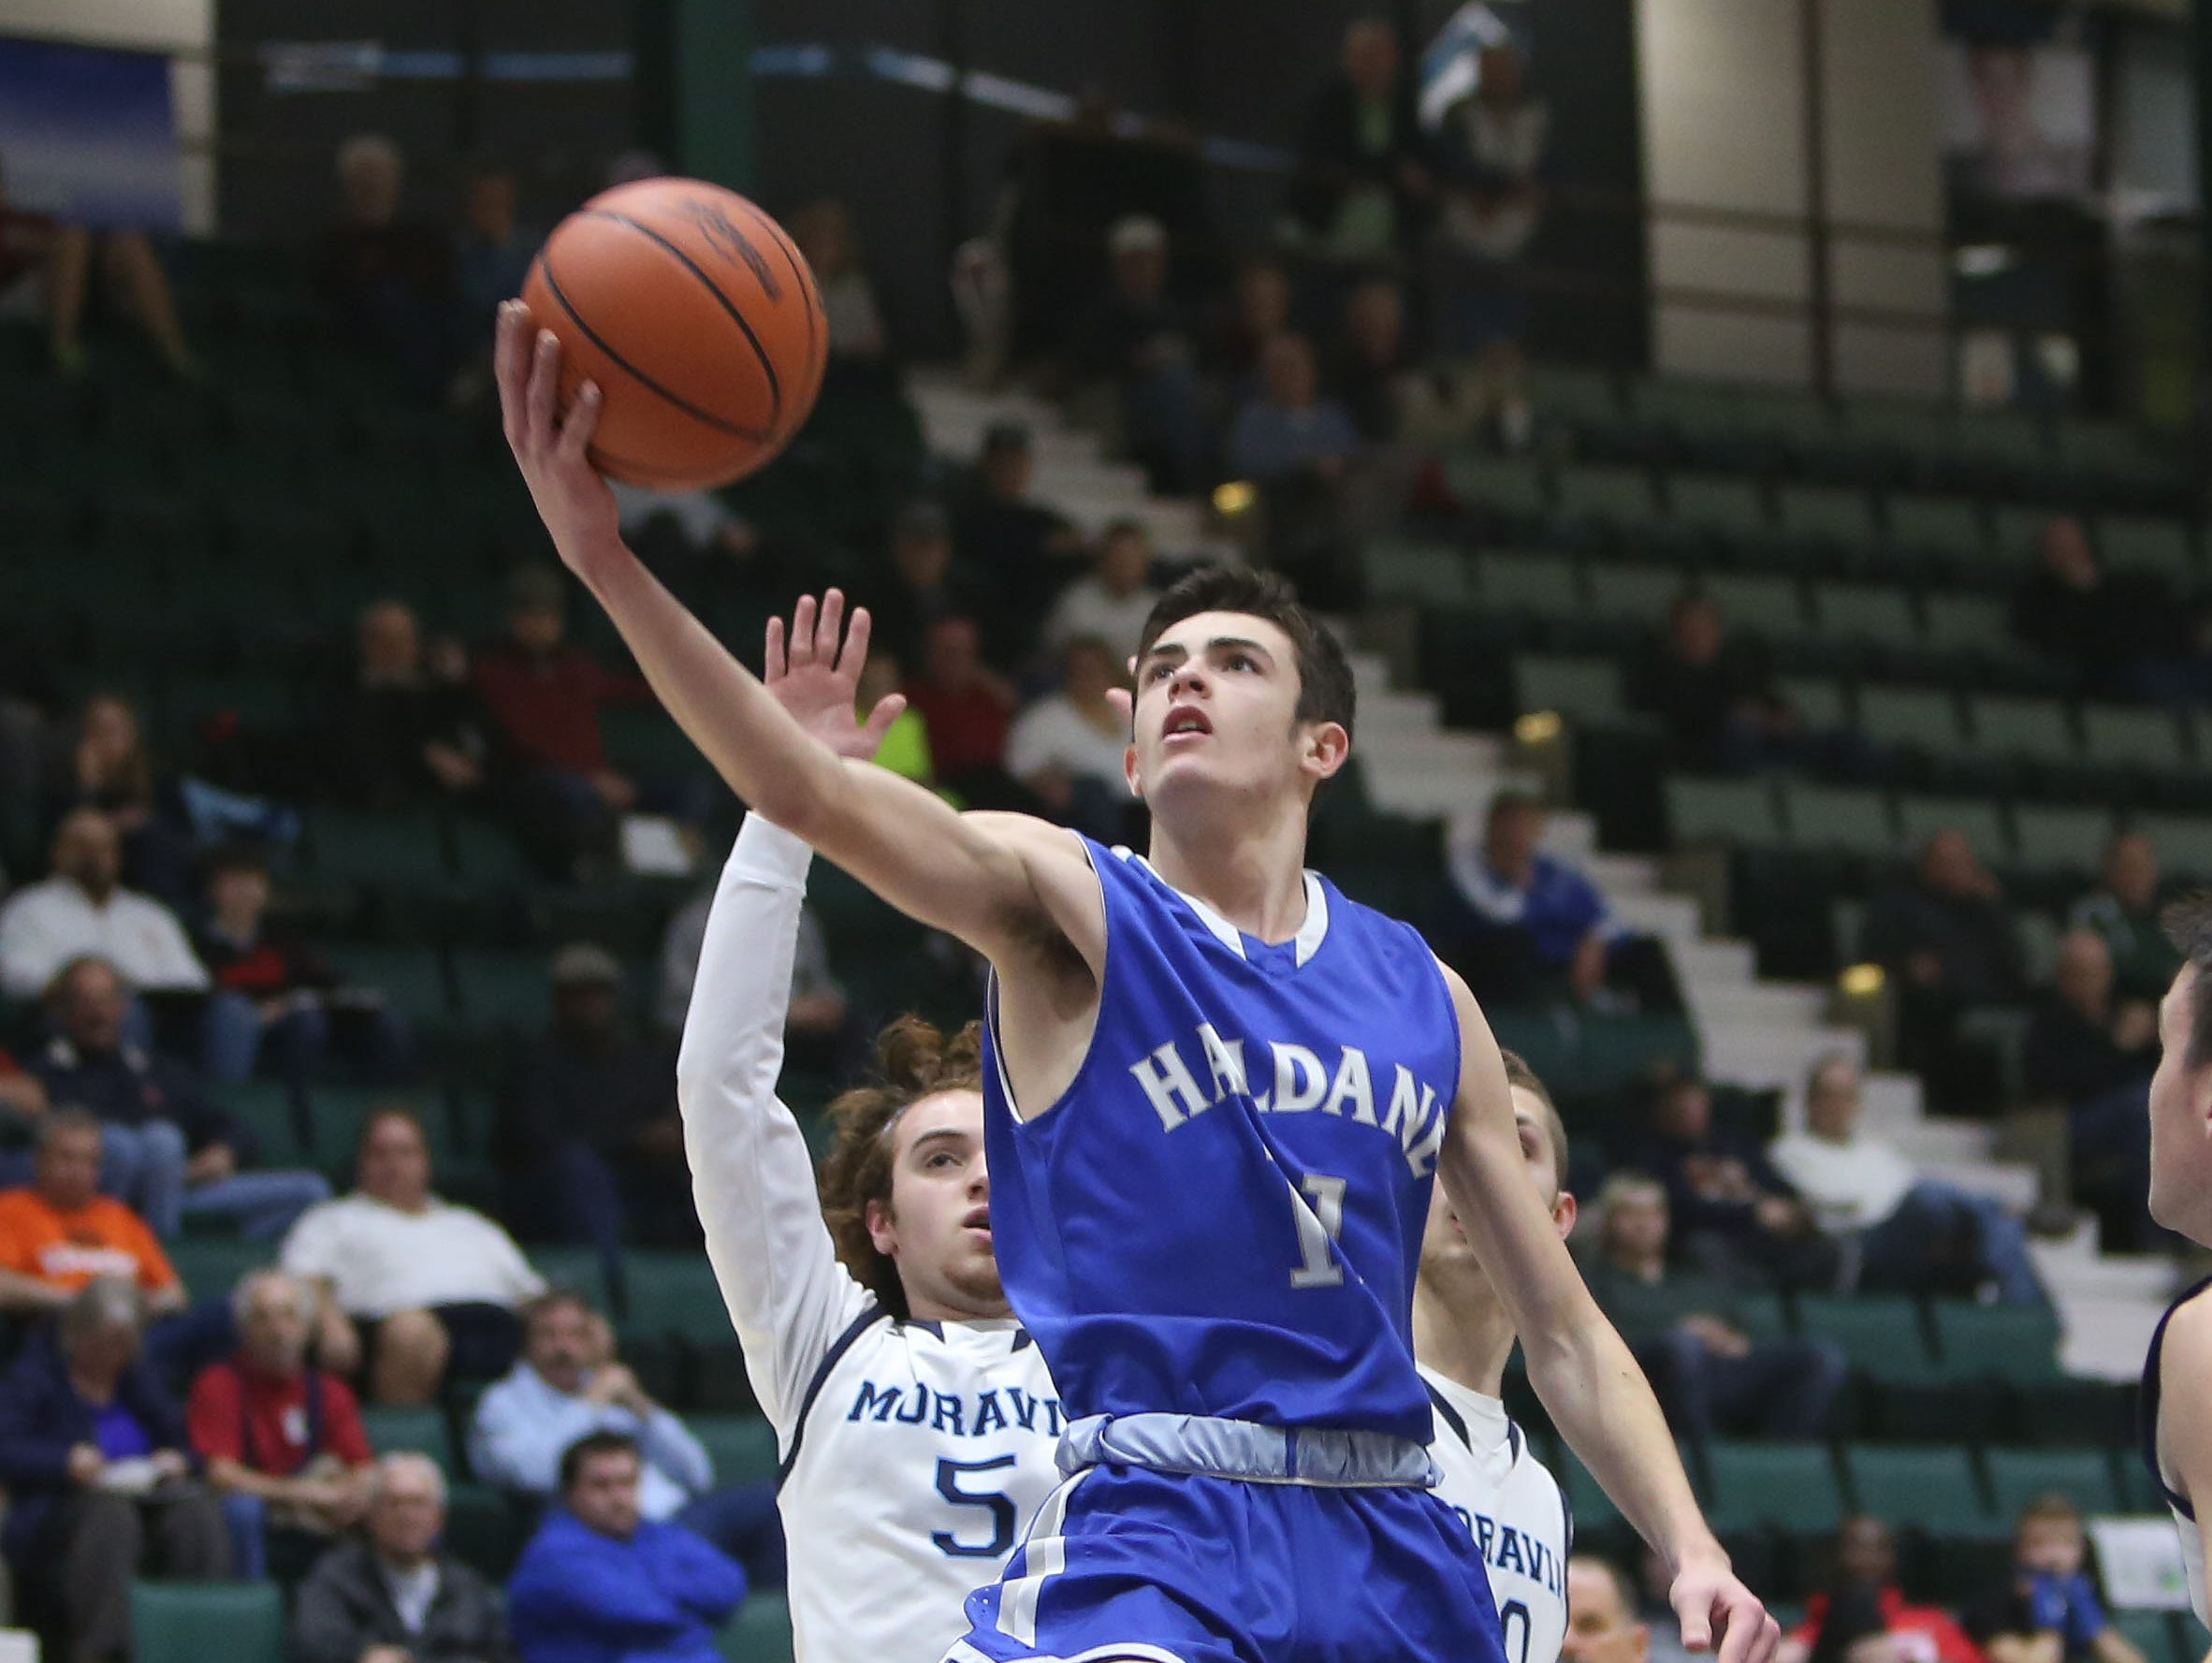 Haldane's Tucker Beachak (11) drives to the basket against Moravia during the boys Class C semifinal at the Glens Falls Civic Center March 11, 2016. Haldane won the game 36-34.